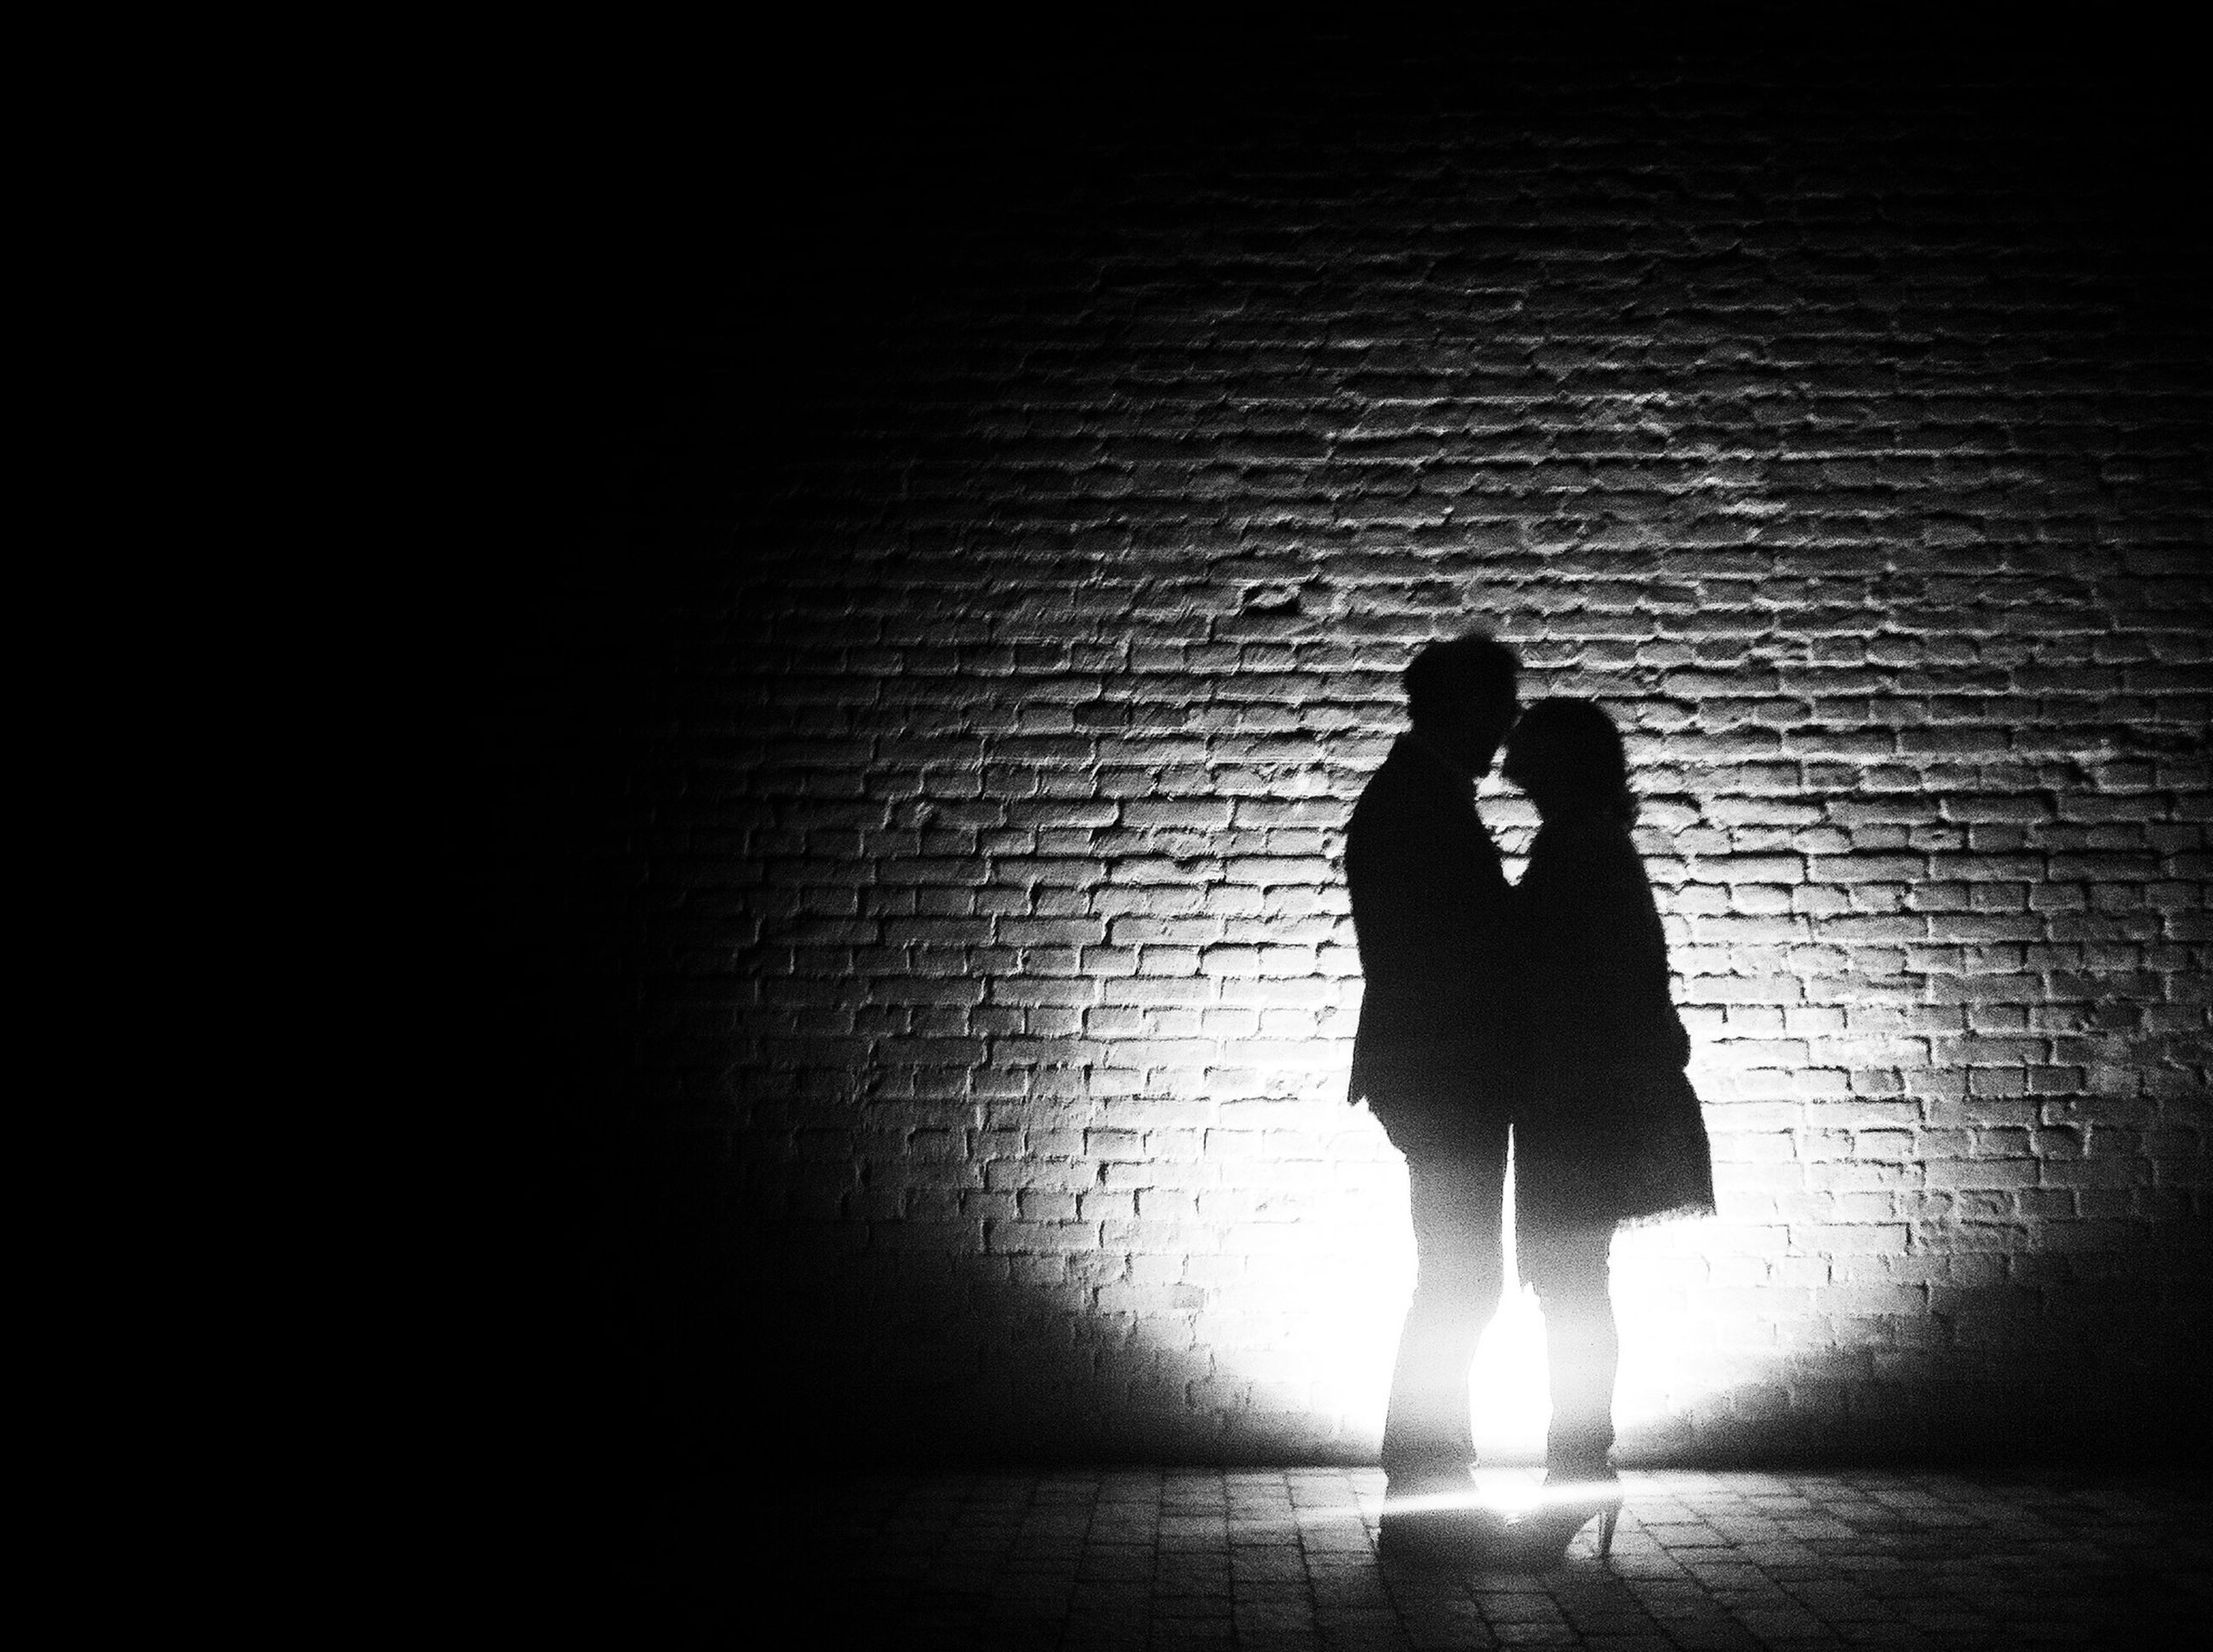 silhouette, lifestyles, full length, standing, men, leisure activity, walking, shadow, night, rear view, wall - building feature, architecture, built structure, dark, person, sunlight, wall